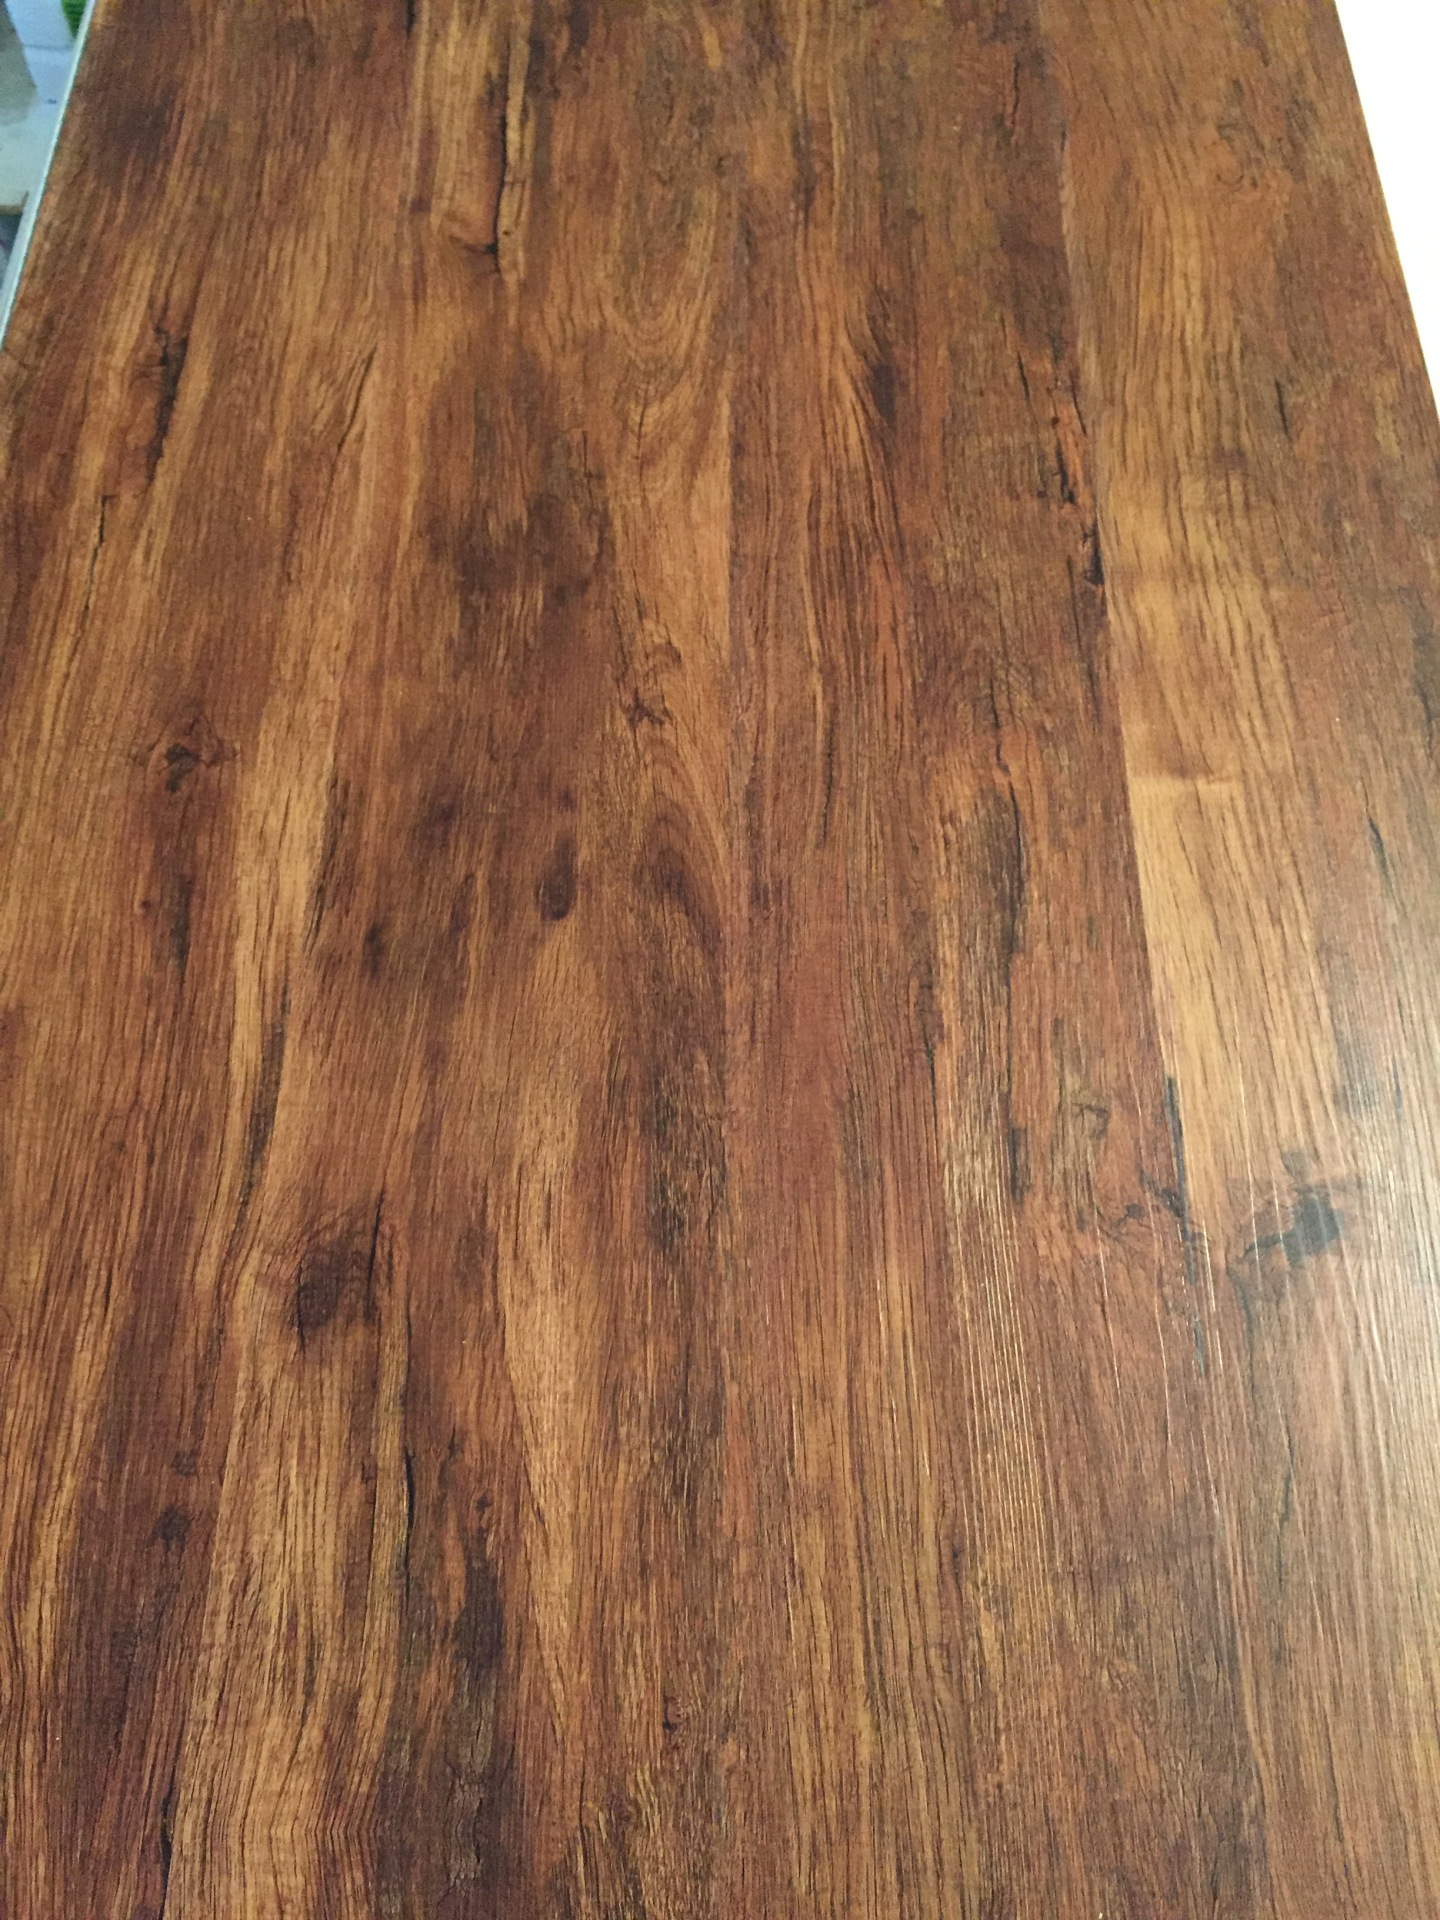 Cheney Eureka Cinnamon Oak- $2.79 sq. ft